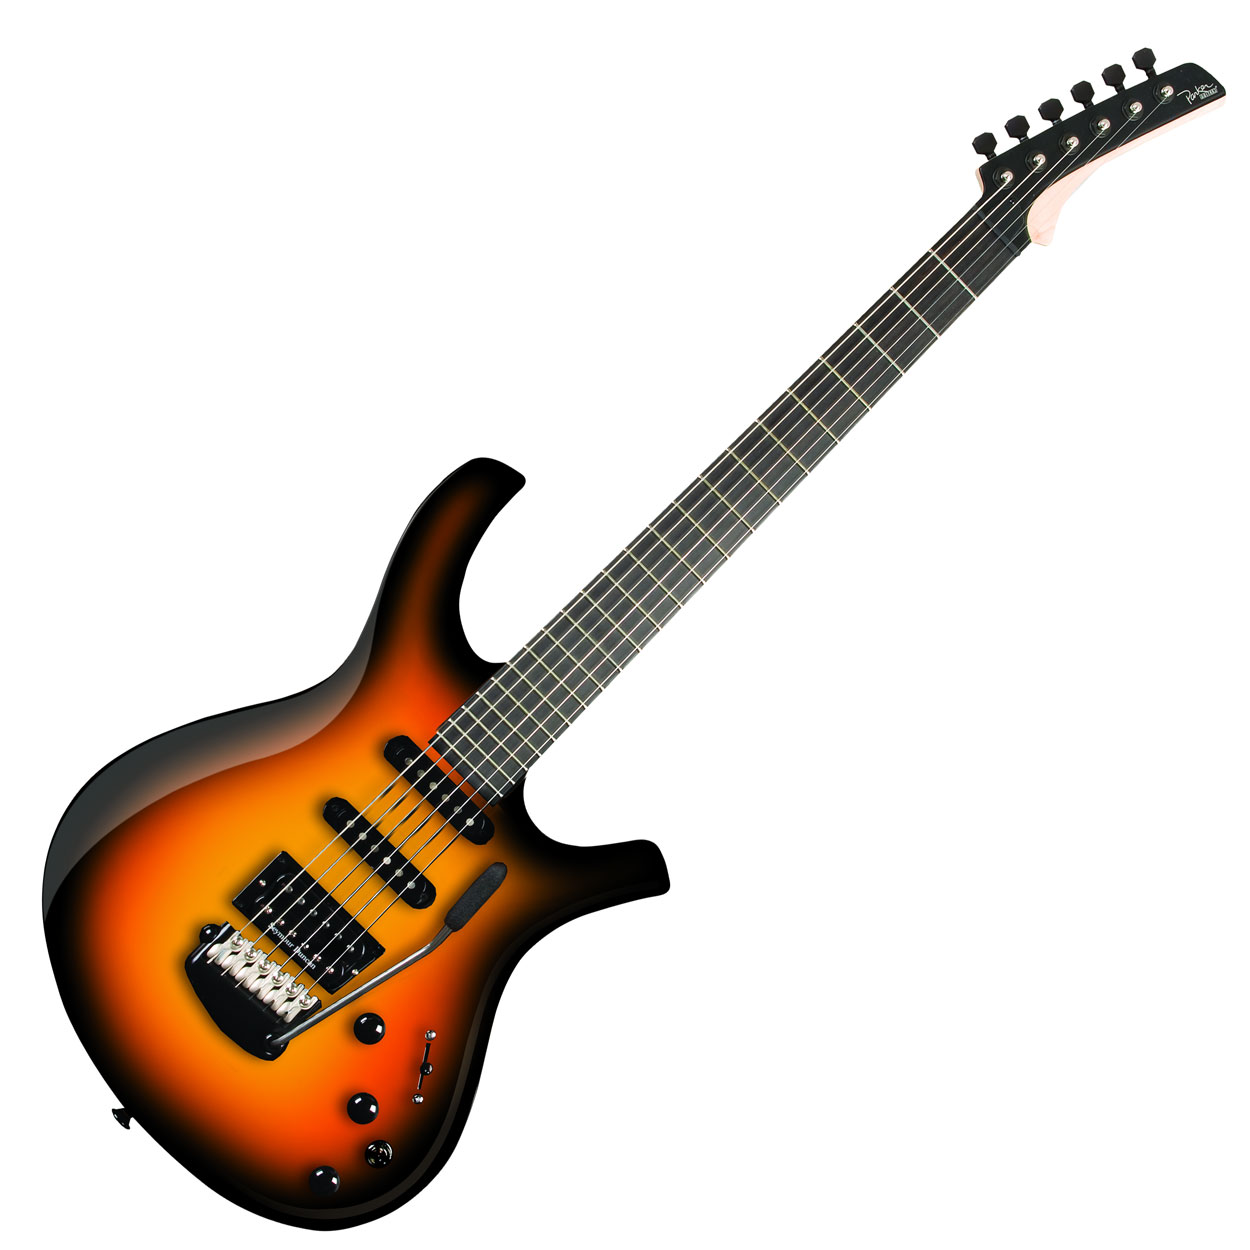 gearfeel reviews parker df624 radial neck joint series electric guitar guitar world. Black Bedroom Furniture Sets. Home Design Ideas